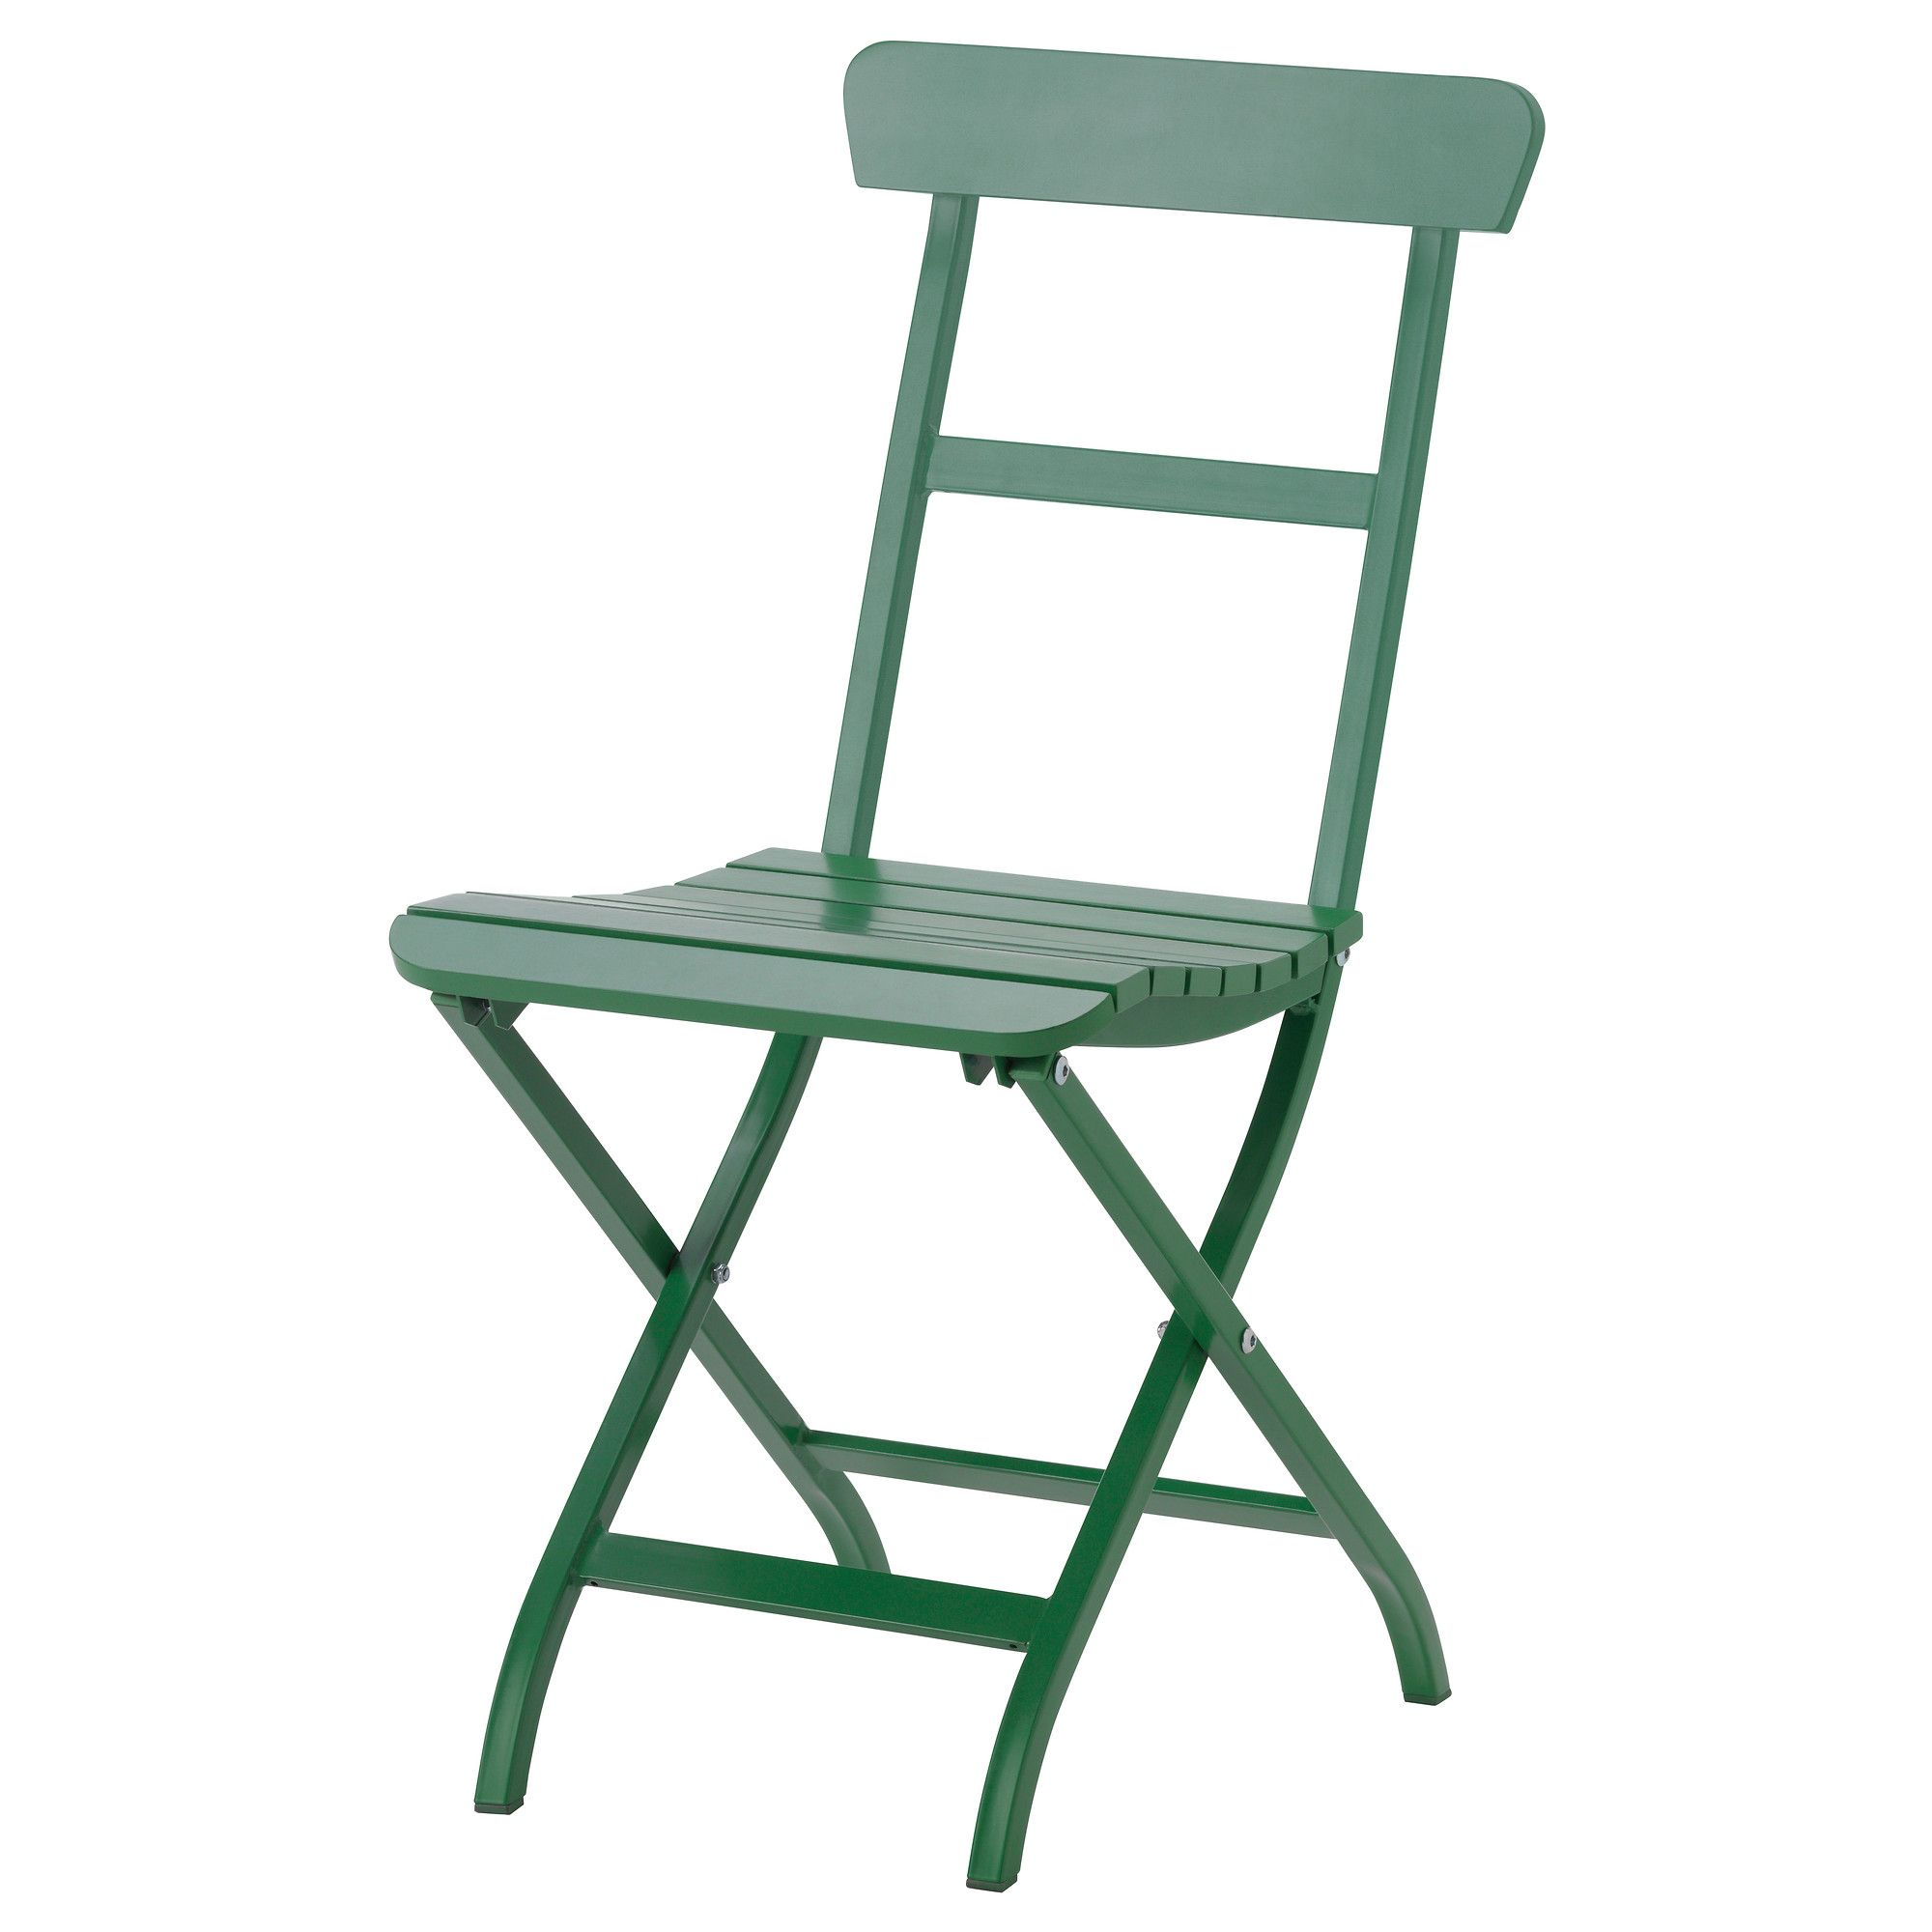 "M""LAR– Folding chair green IKEA Outdoor Space"